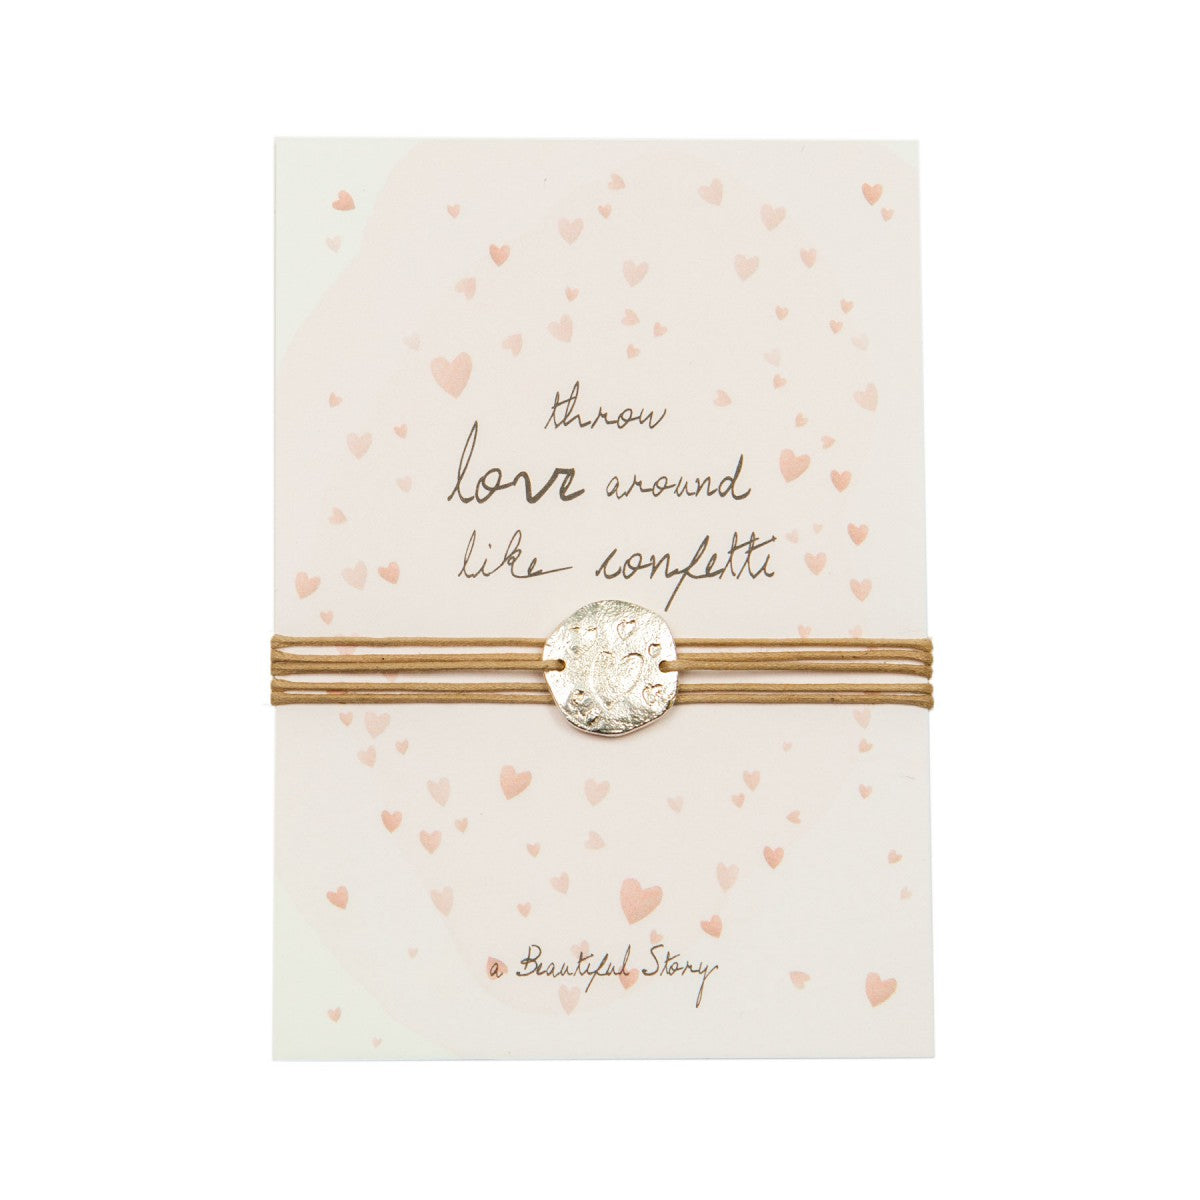 A Beautiful Story - jewelry postcard hearts - throw love around like confetti